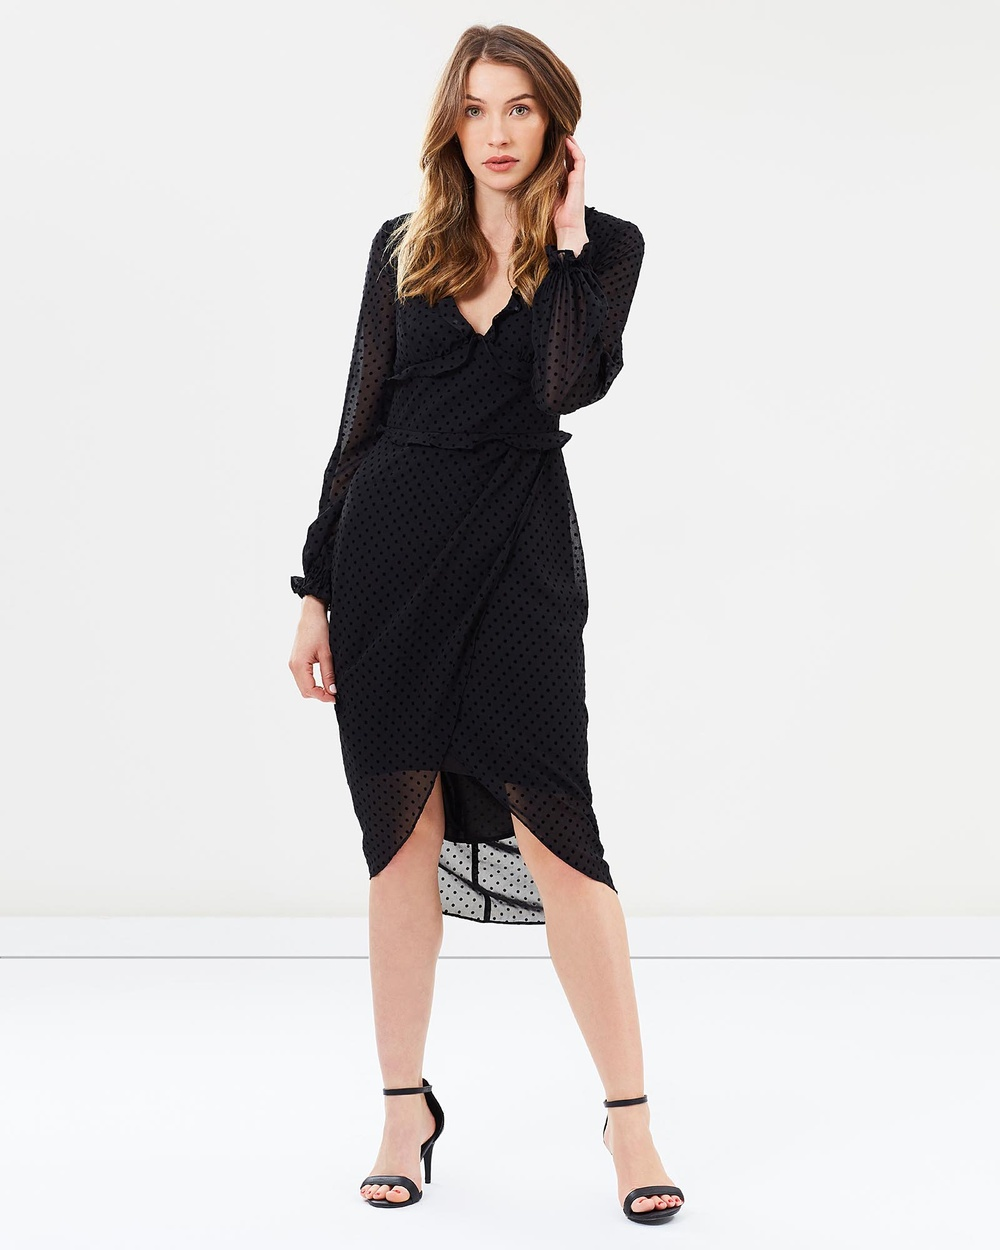 Photo of Cooper St Cooper St Harper Long Sleeve Drape Dress Dresses Black Harper Long Sleeve Drape Dress - Playfully demure, the Harper Long Sleeve Drape Dress by Cooper St features an alluring V-neckline detailed with on-trend frilling and figure-hugging silhouette. Expertly worked in sheer flocked spot chiffon, the midi-length cocktail number comes finished with a fixed wrap skirt and tulip high-low hemline. Our model is wearing a size AU 8 dress. She is 173cm (5&rsquo8&rdqu